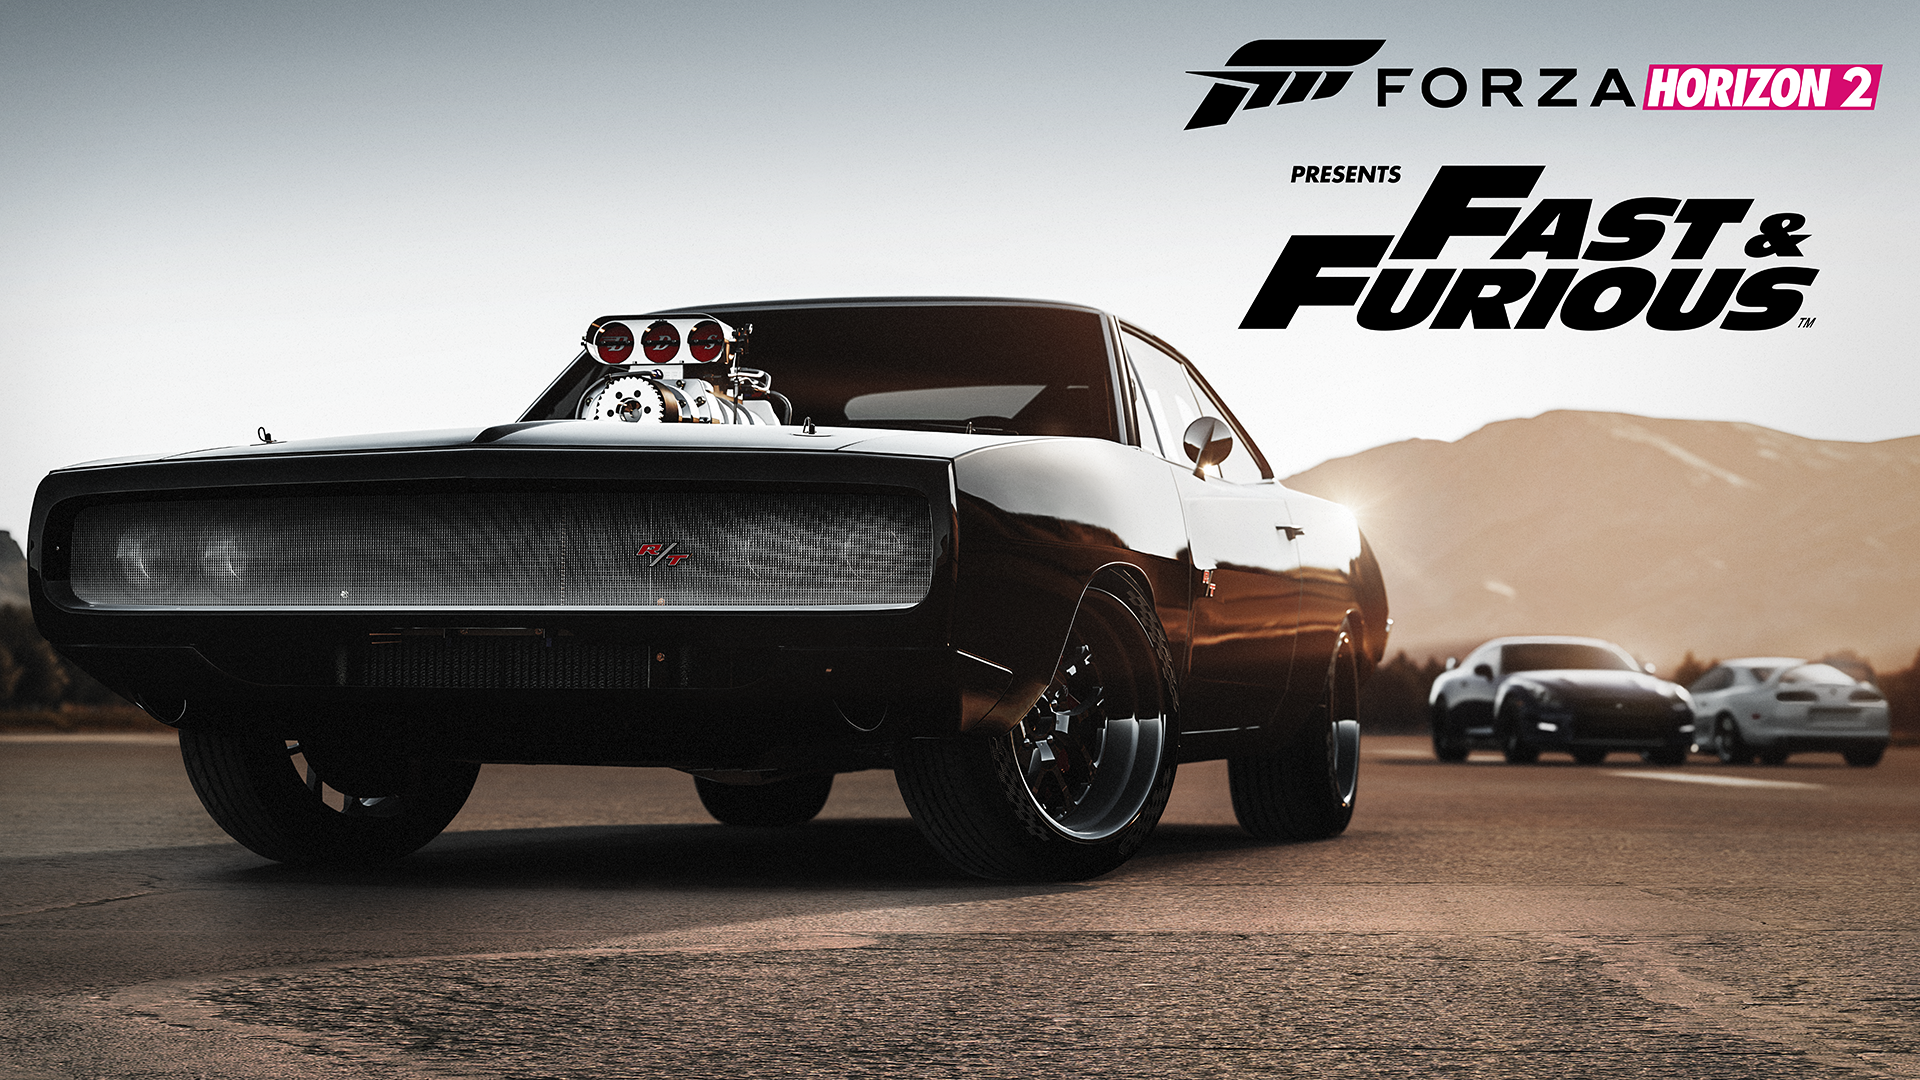 You can play the standalone Fast & Furious Forza game for